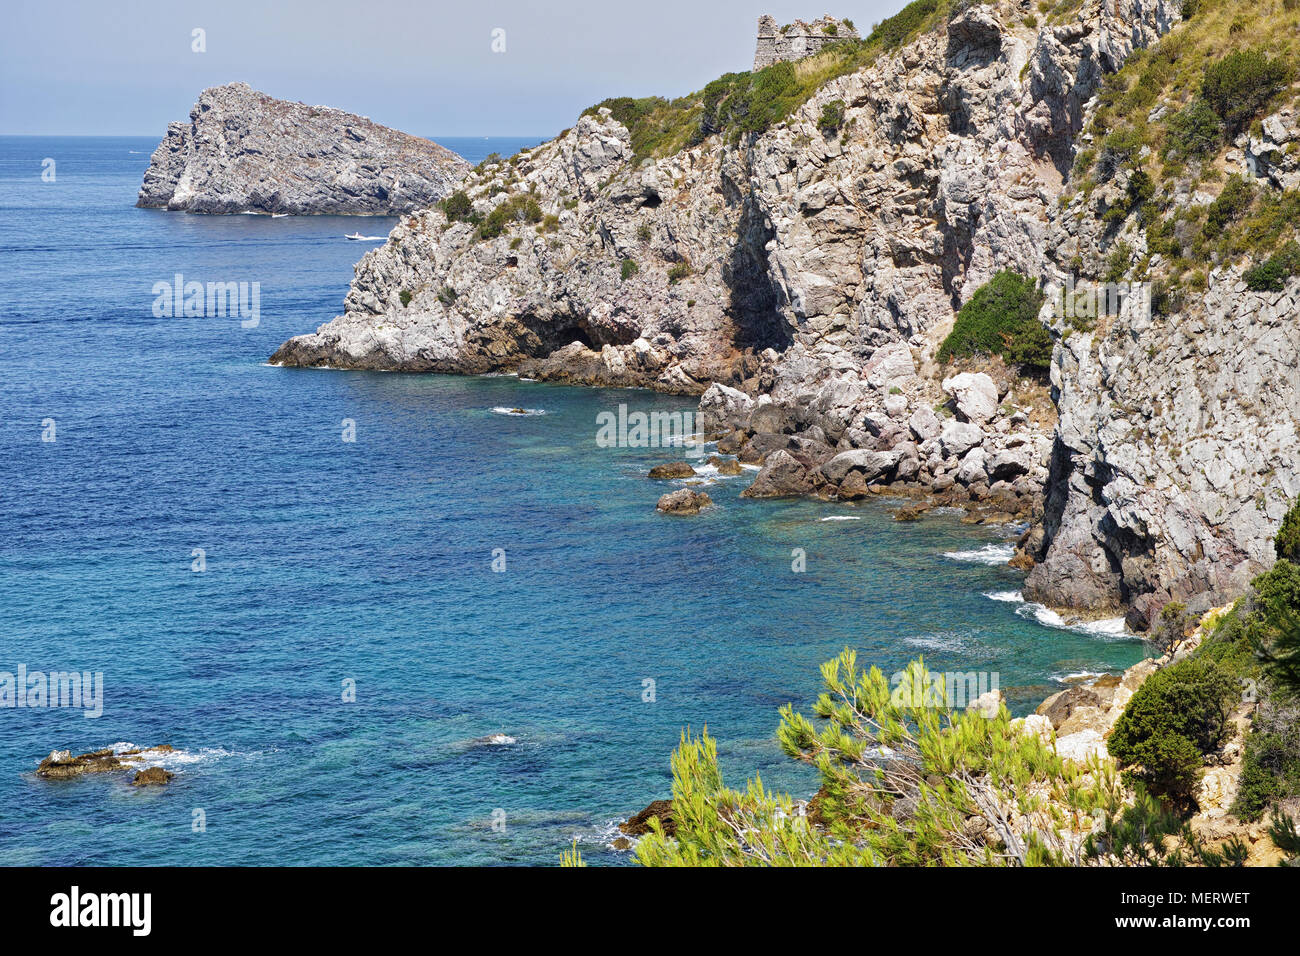 stretch of coast on the promontory of Argentario, Tuscany, Italy - Stock Image